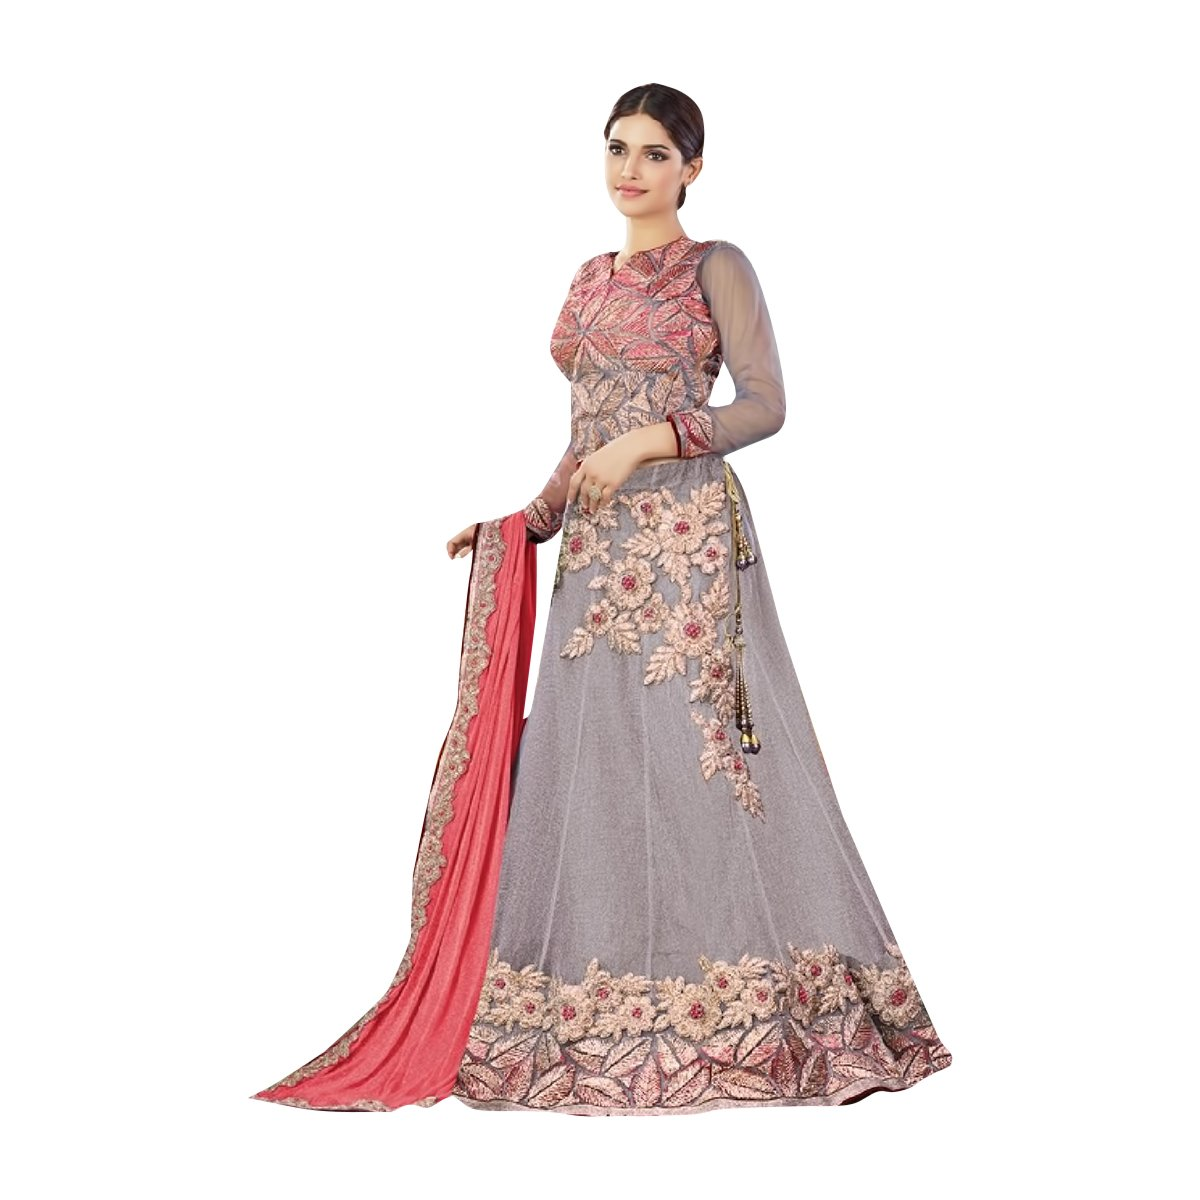 Wedding Indian Women Dress Hijab Straight Lehenga Choli Salwar Kameez Suit Party Wear 502